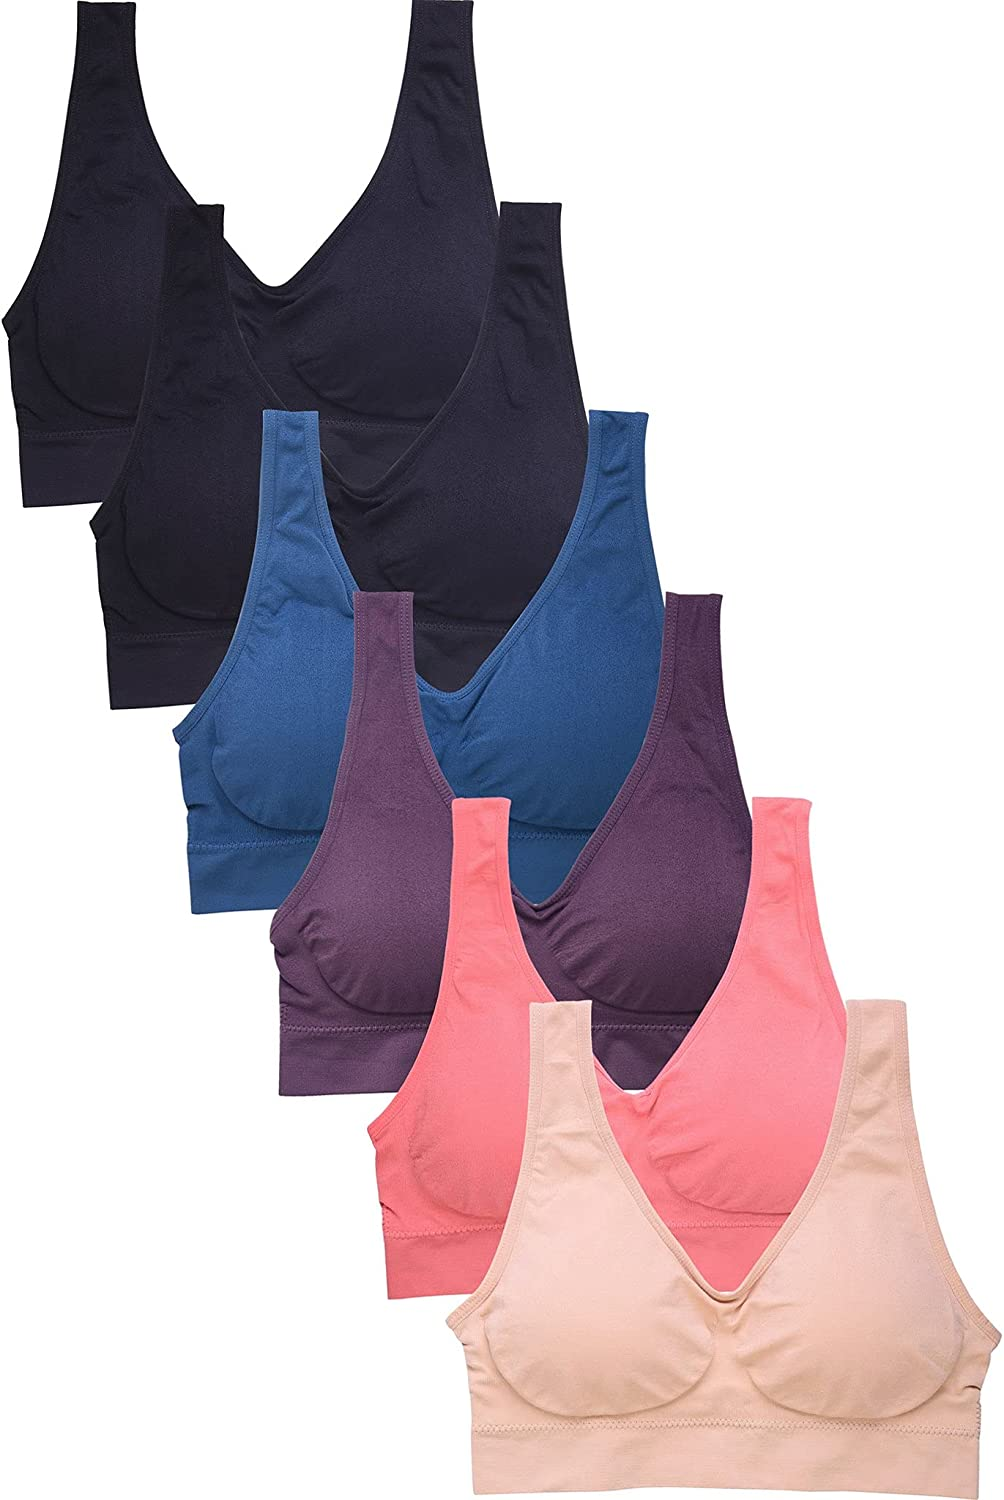 DailyWear Womens Sports Bra 6 Pack Various Style - One Size, Plus Size